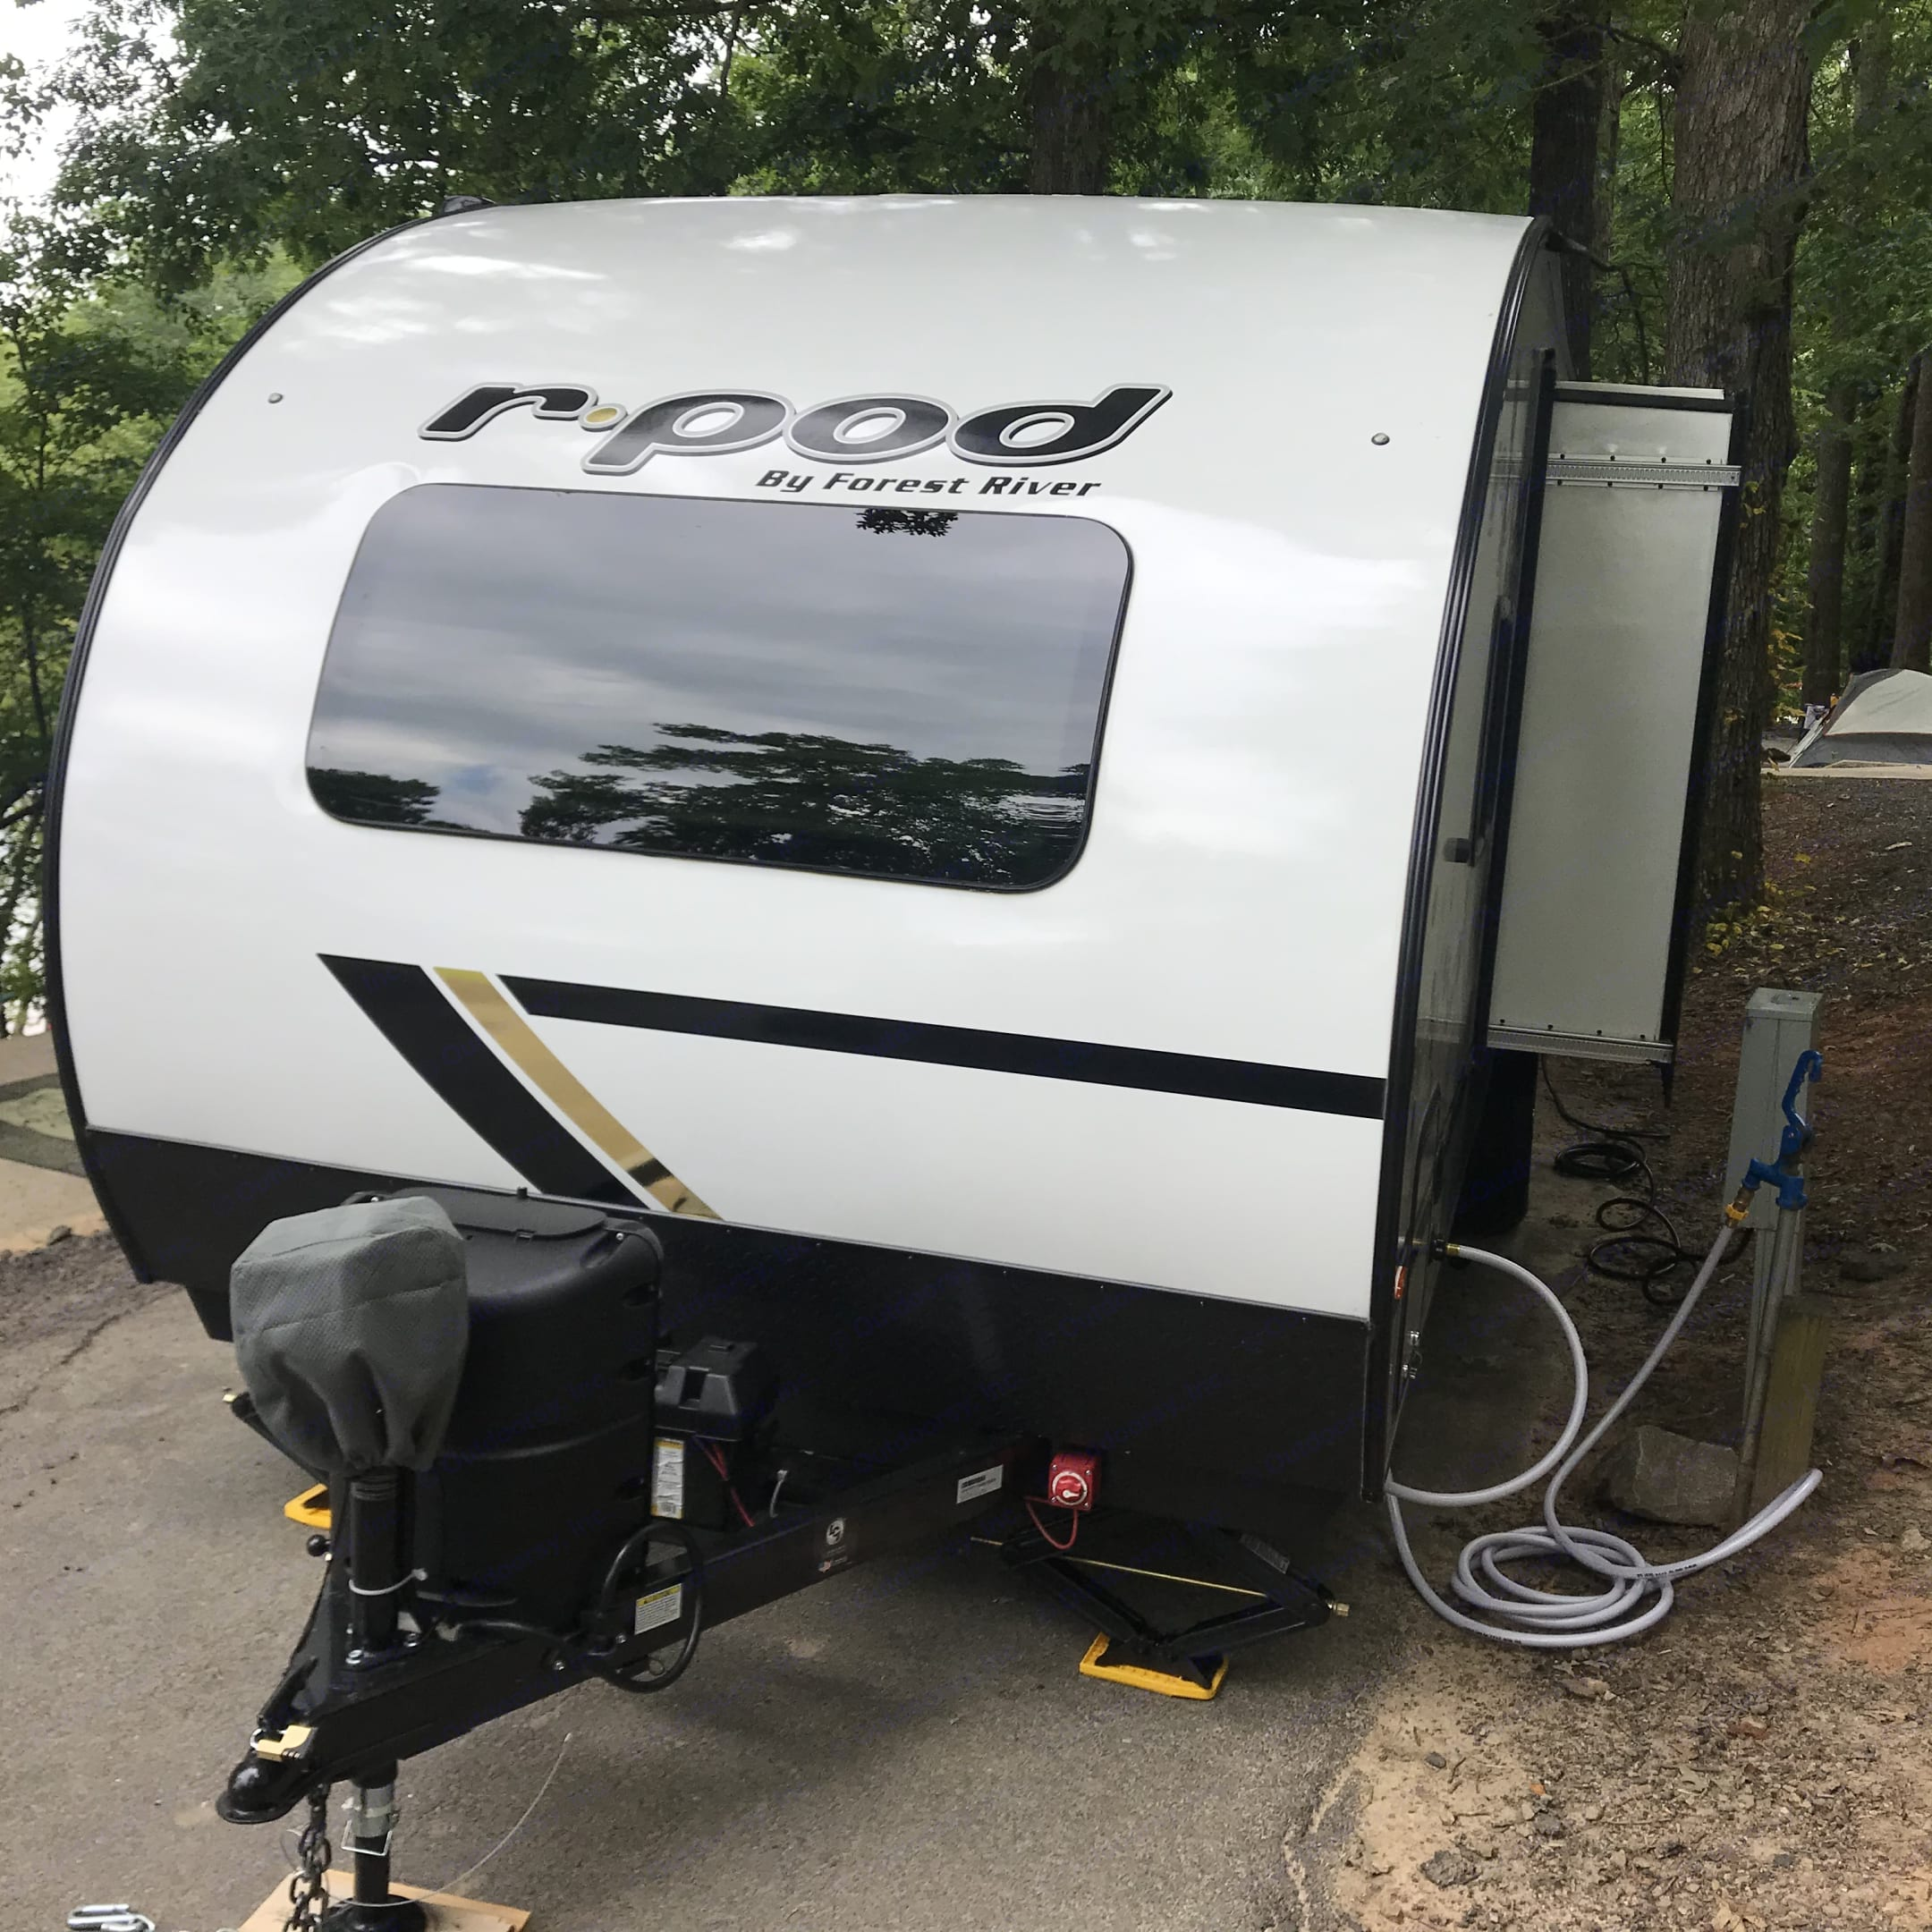 Exterior front. Shown at Campground with Slide-Out extended and Water Hooked-up. Forest River R-Pod 2021